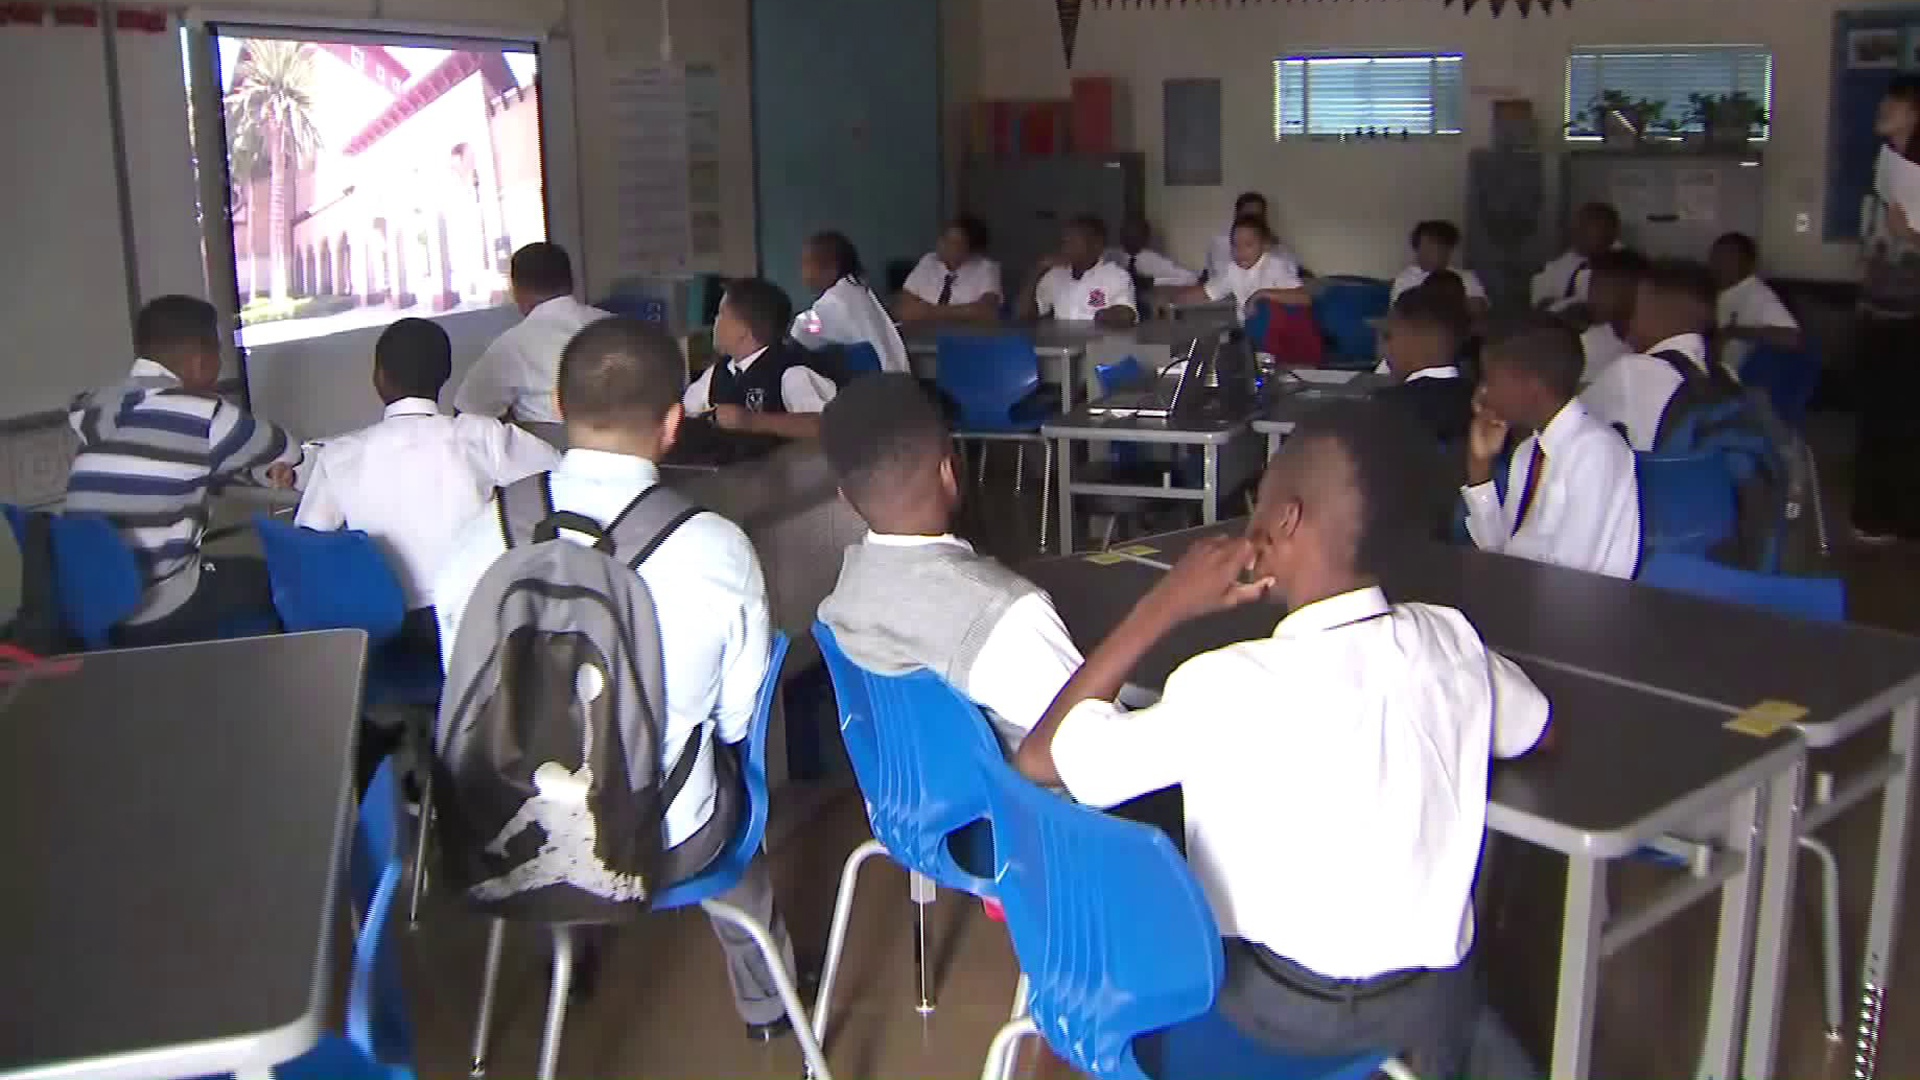 Students arrived for the first day of instruction at the Boys Academic Leadership Academy in South Los Angeles on Aug. 15, 2017. (Credit: KTLA)